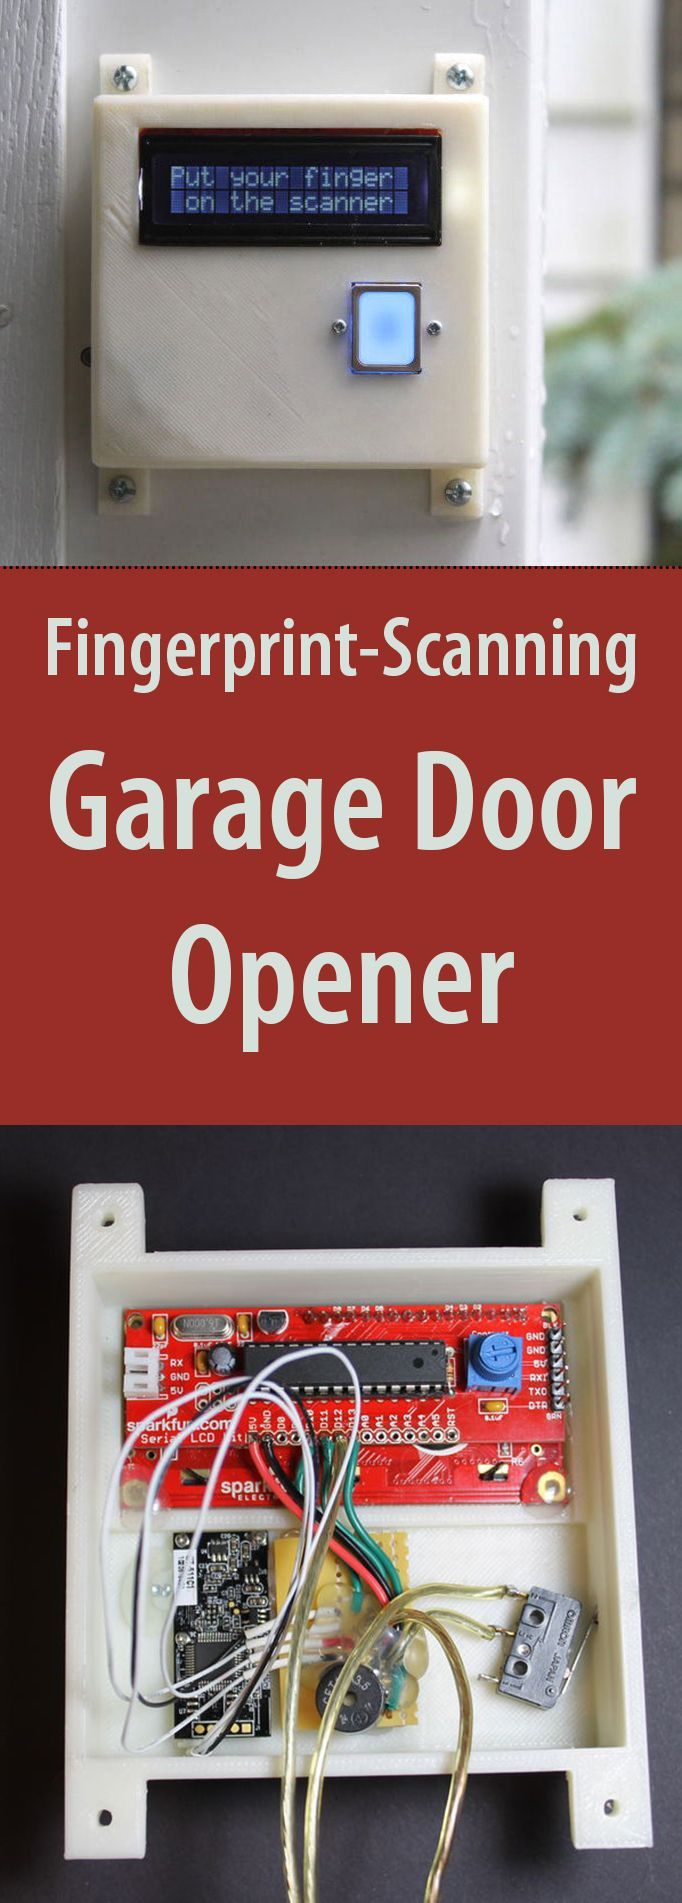 Diy Fingerprint Scanning Garage Door Opener Everything Circuit Diagram Puertas Logicas Homemade Pic Programmer Schematic Your Is The Key With This High Tech Opening Device